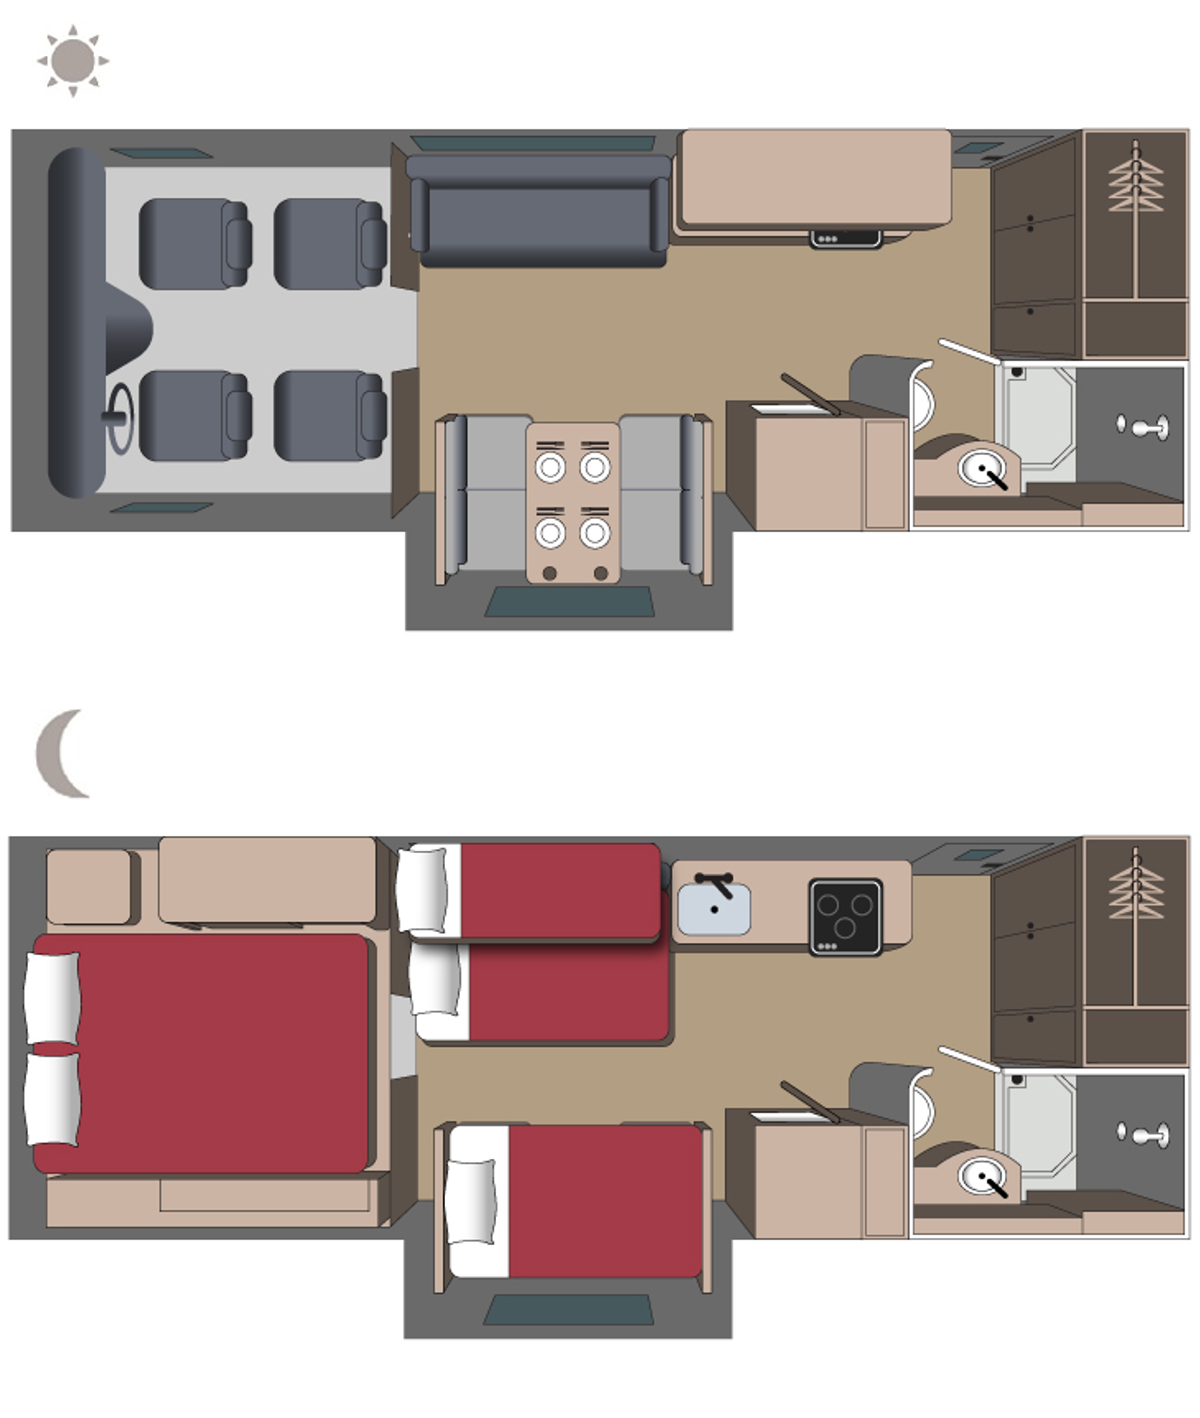 Adventurer4 Floor plan (day and night)